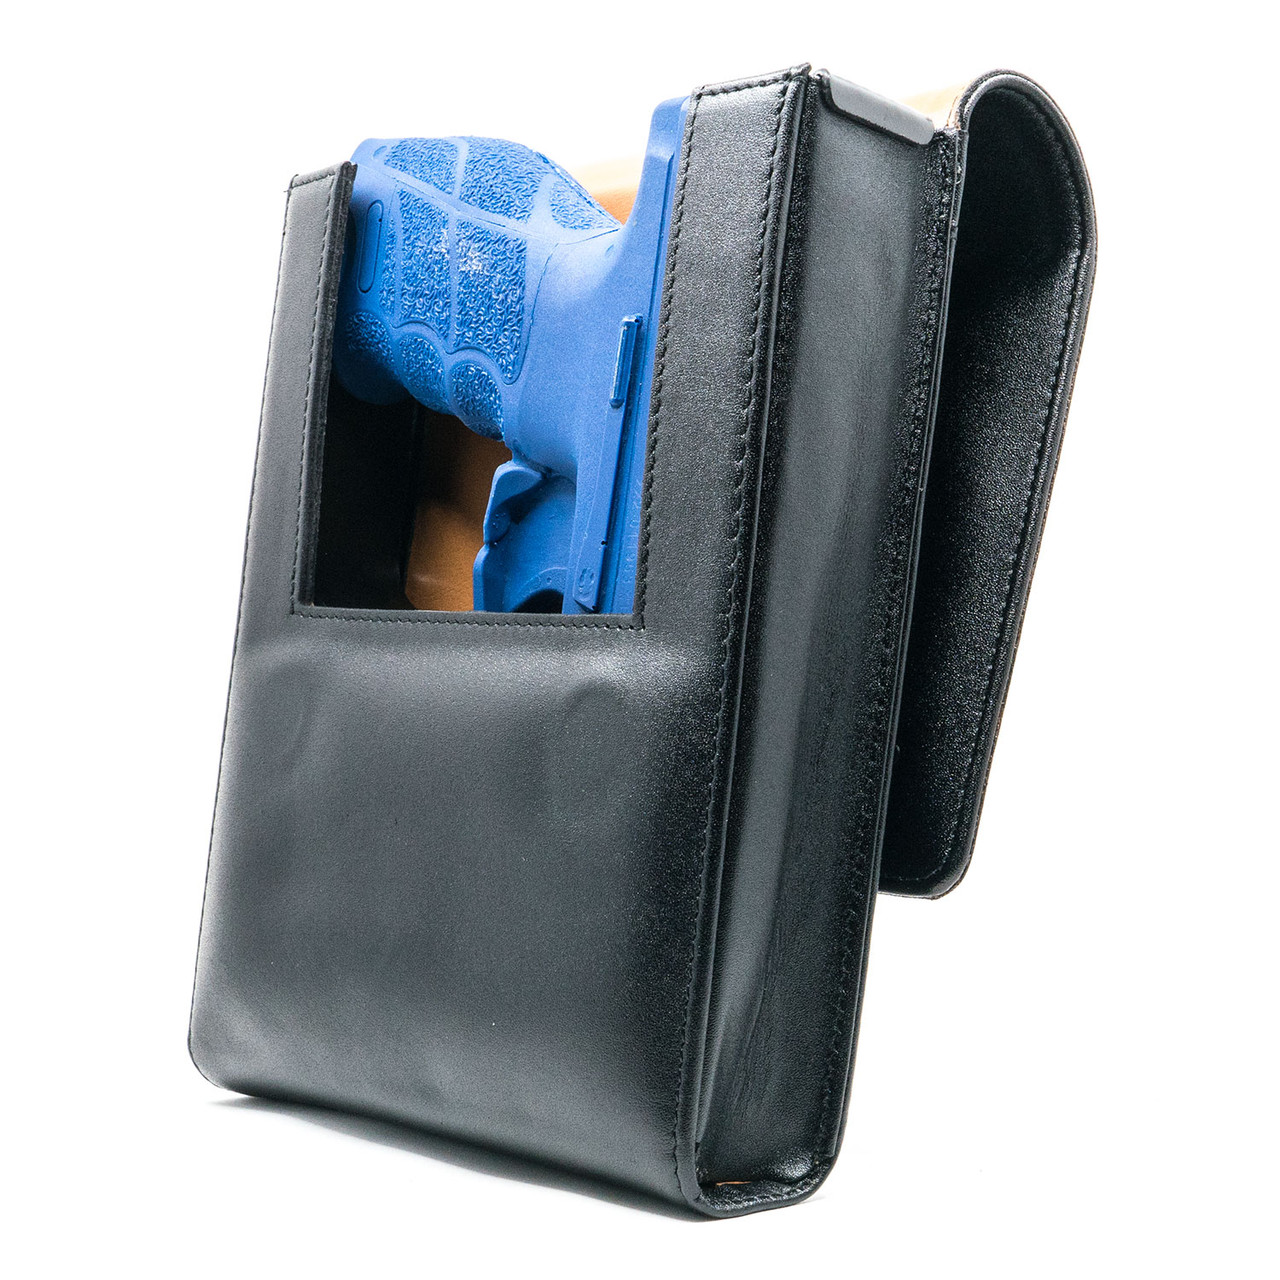 HK VP40 Concealed Carry Holster (Belt Loop)